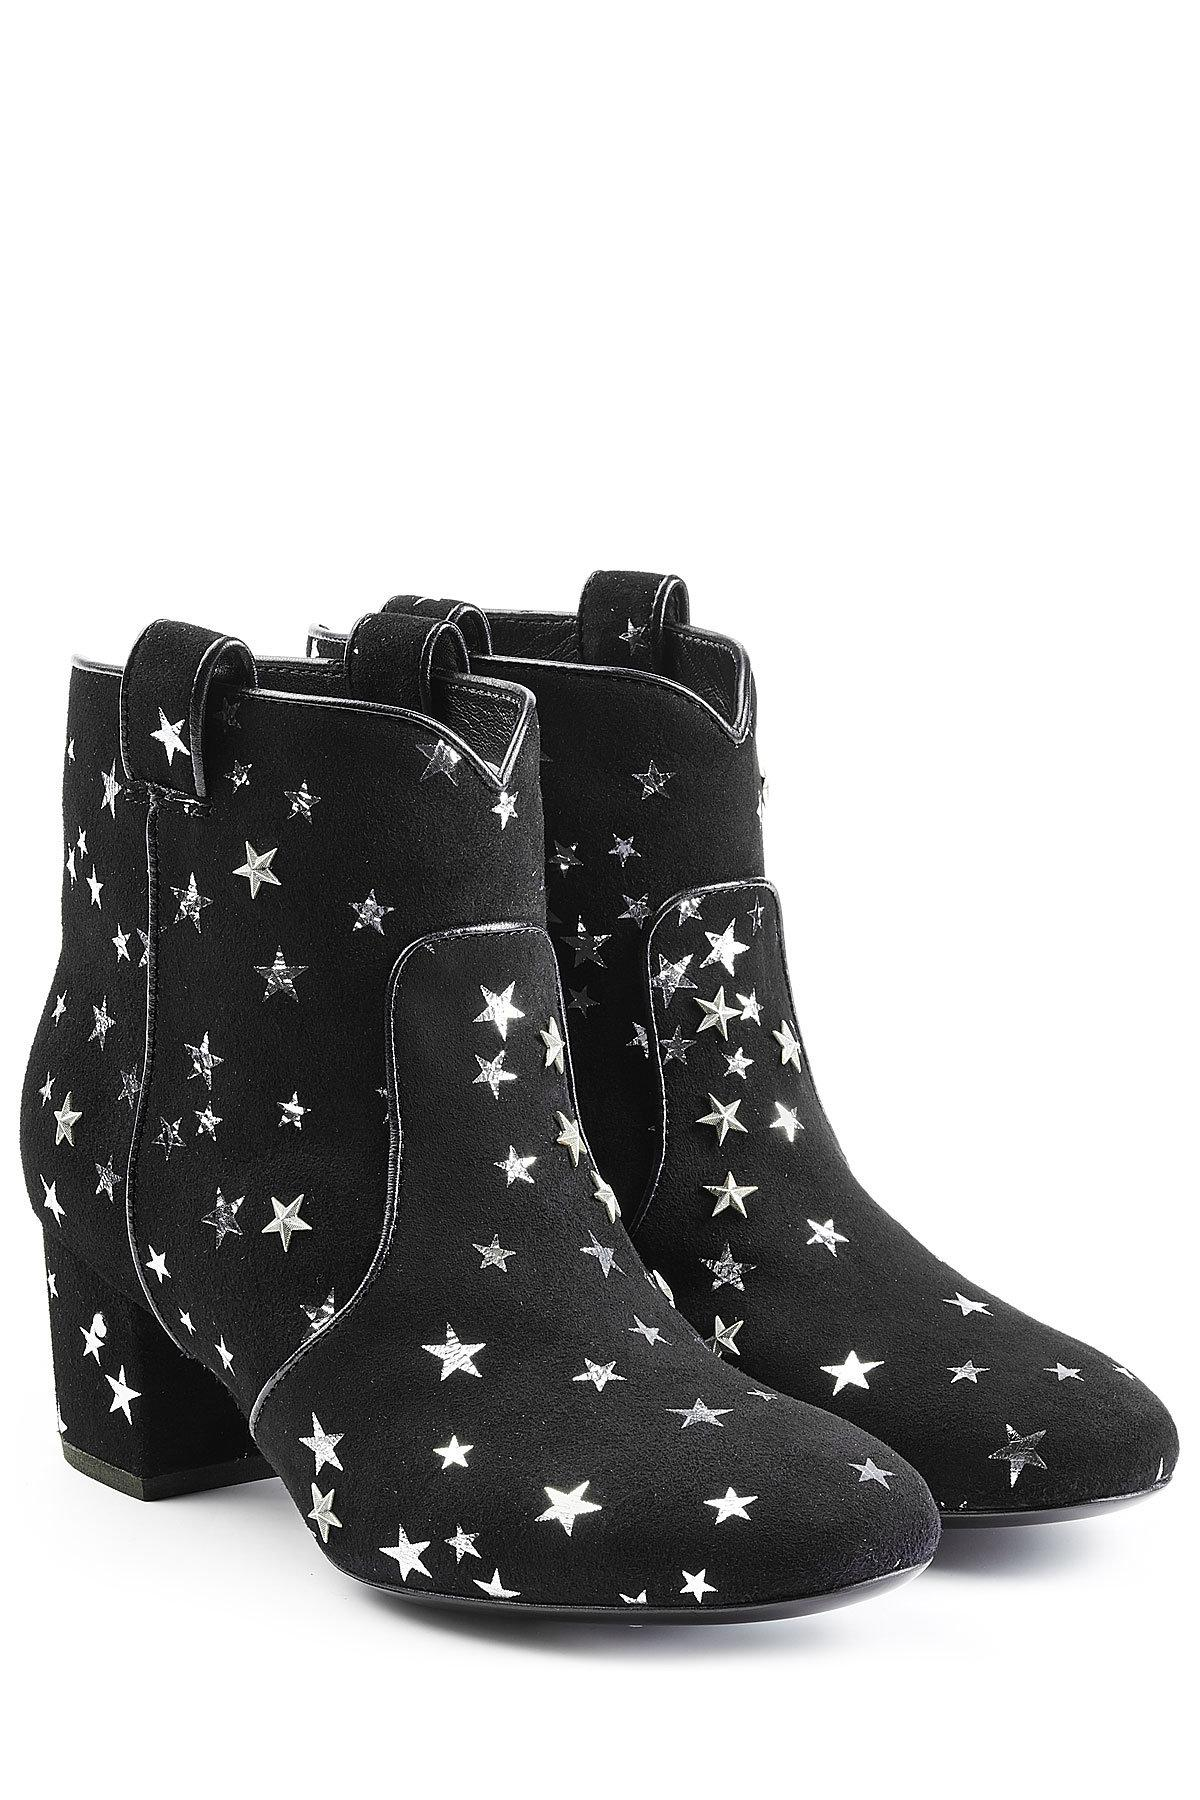 Laurence Dacade Canvas Round-Toe Ankle Boots cheap latest collections clearance professional discount wiki outlet new arrival QpEfOvj6